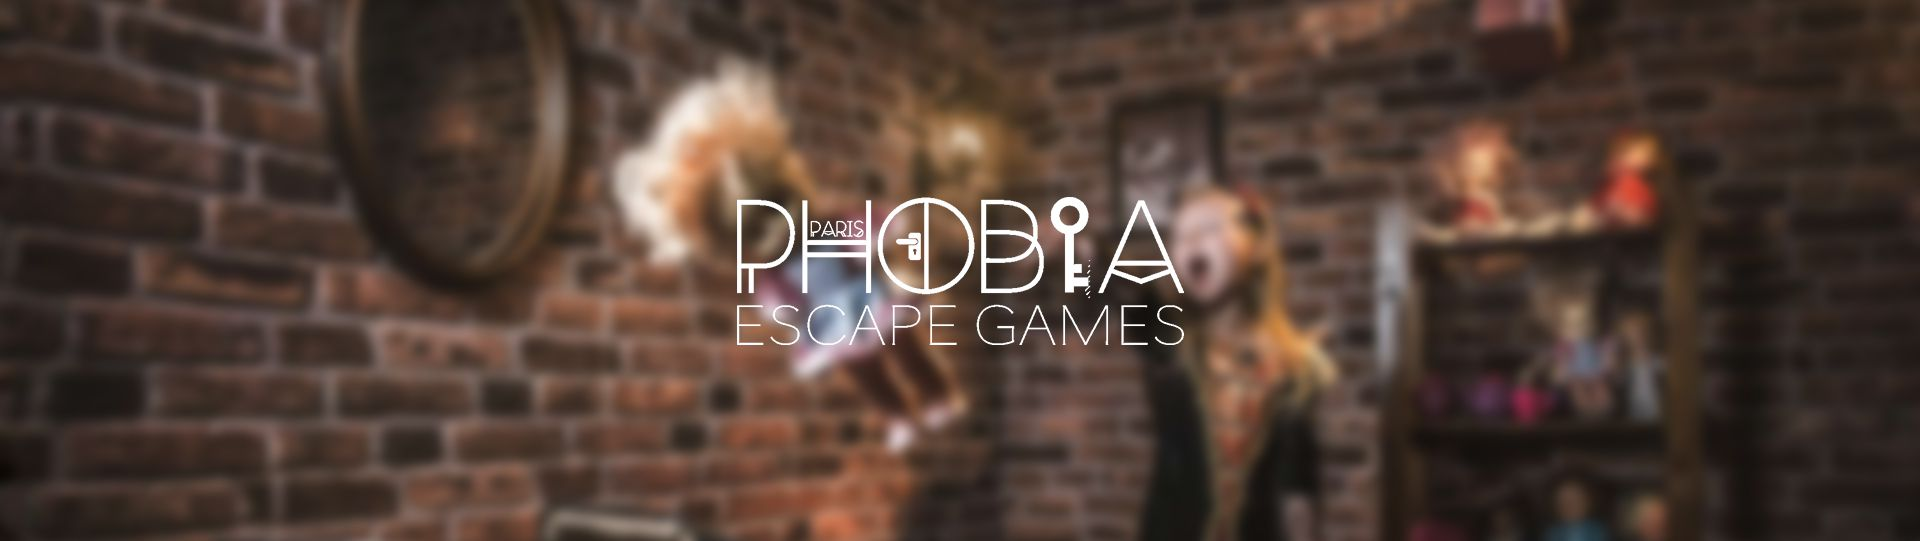 Phobia escape game les disparus.jpg